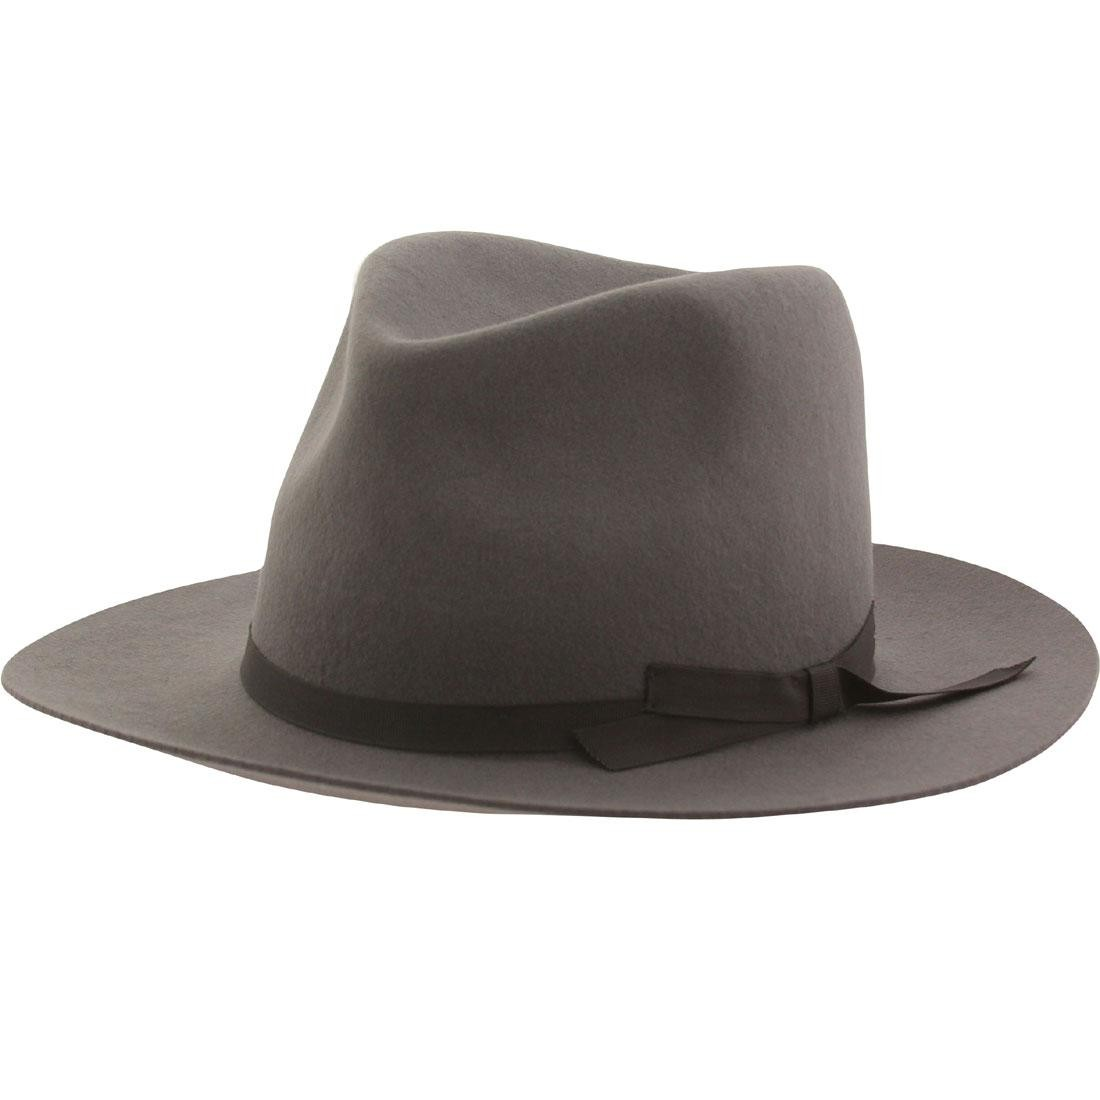 3981ce7d5 Brixton Manhattan Fedora Hat (gray / light)